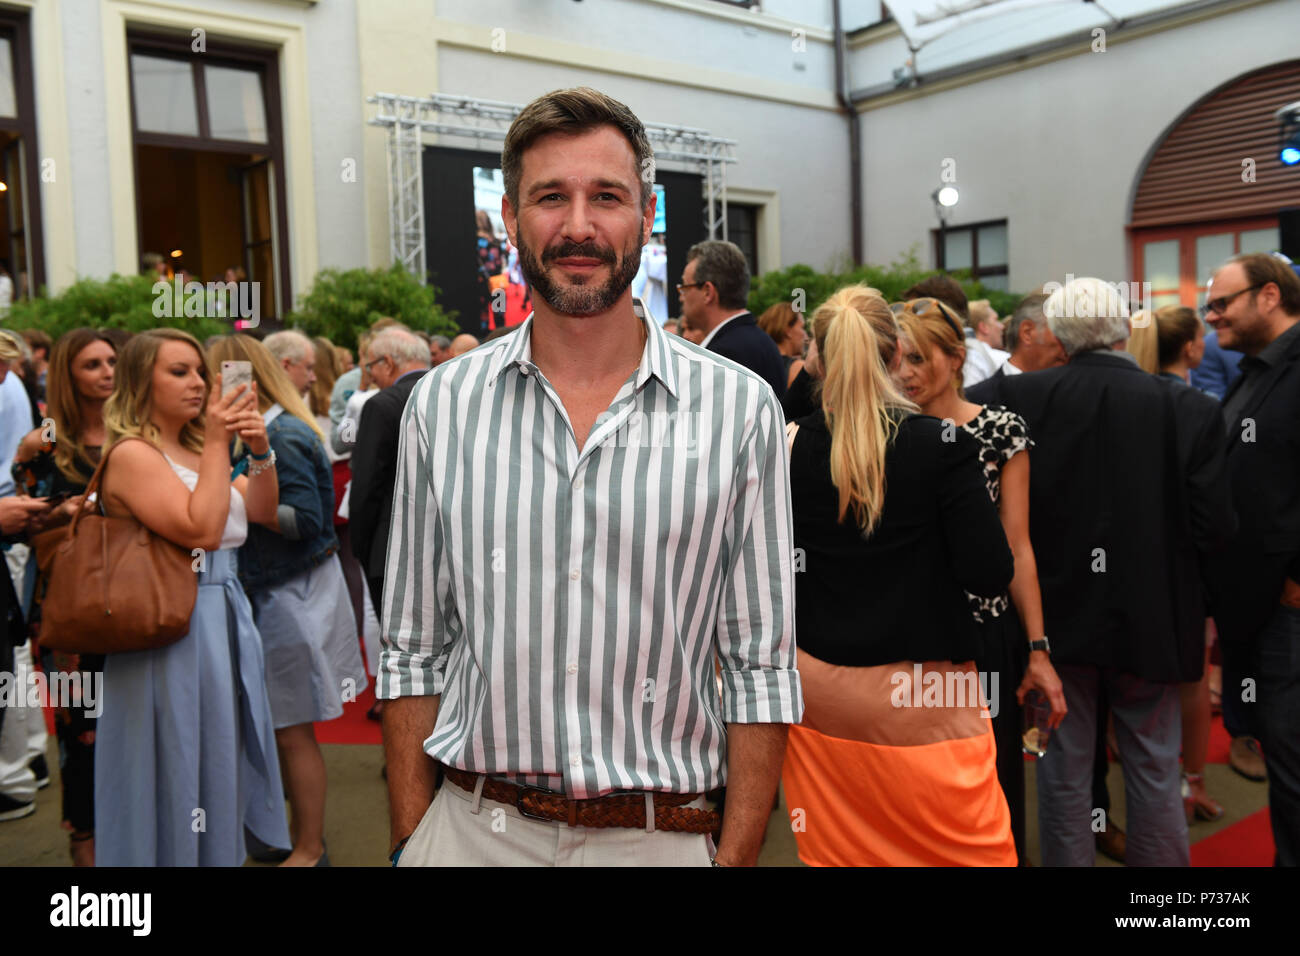 03 July 2018, Germany, Munich: Actor Jochen Schropp attends the Bavaria Film reception at the Kuenstlerhaus, an event hosted on occasion of the Film Festival Munich. Photo: Felix Hörhager/dpa - Stock Image